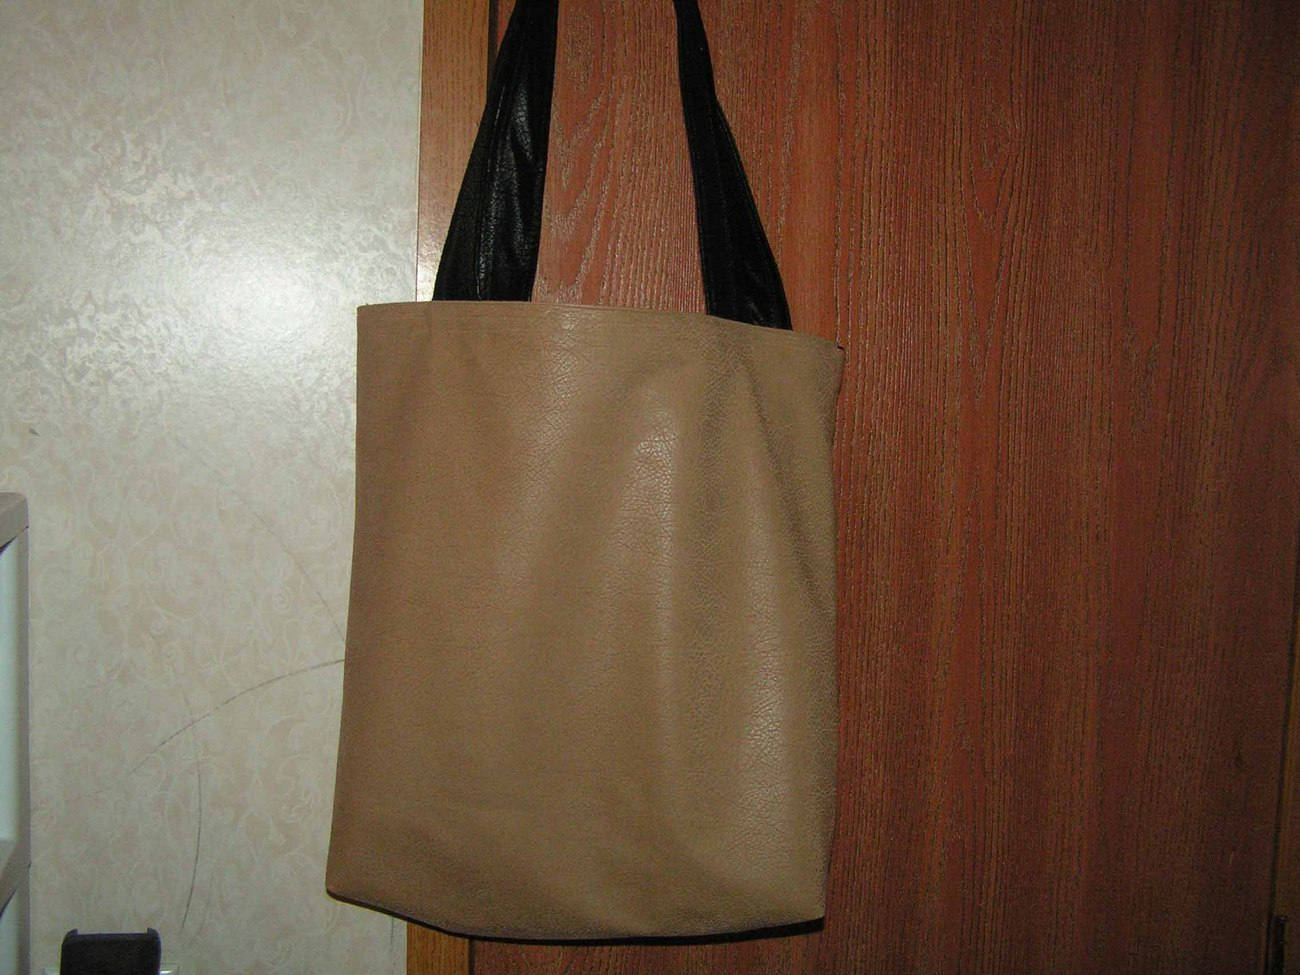 beautiful reversible tote bag made of faux leather black/biege